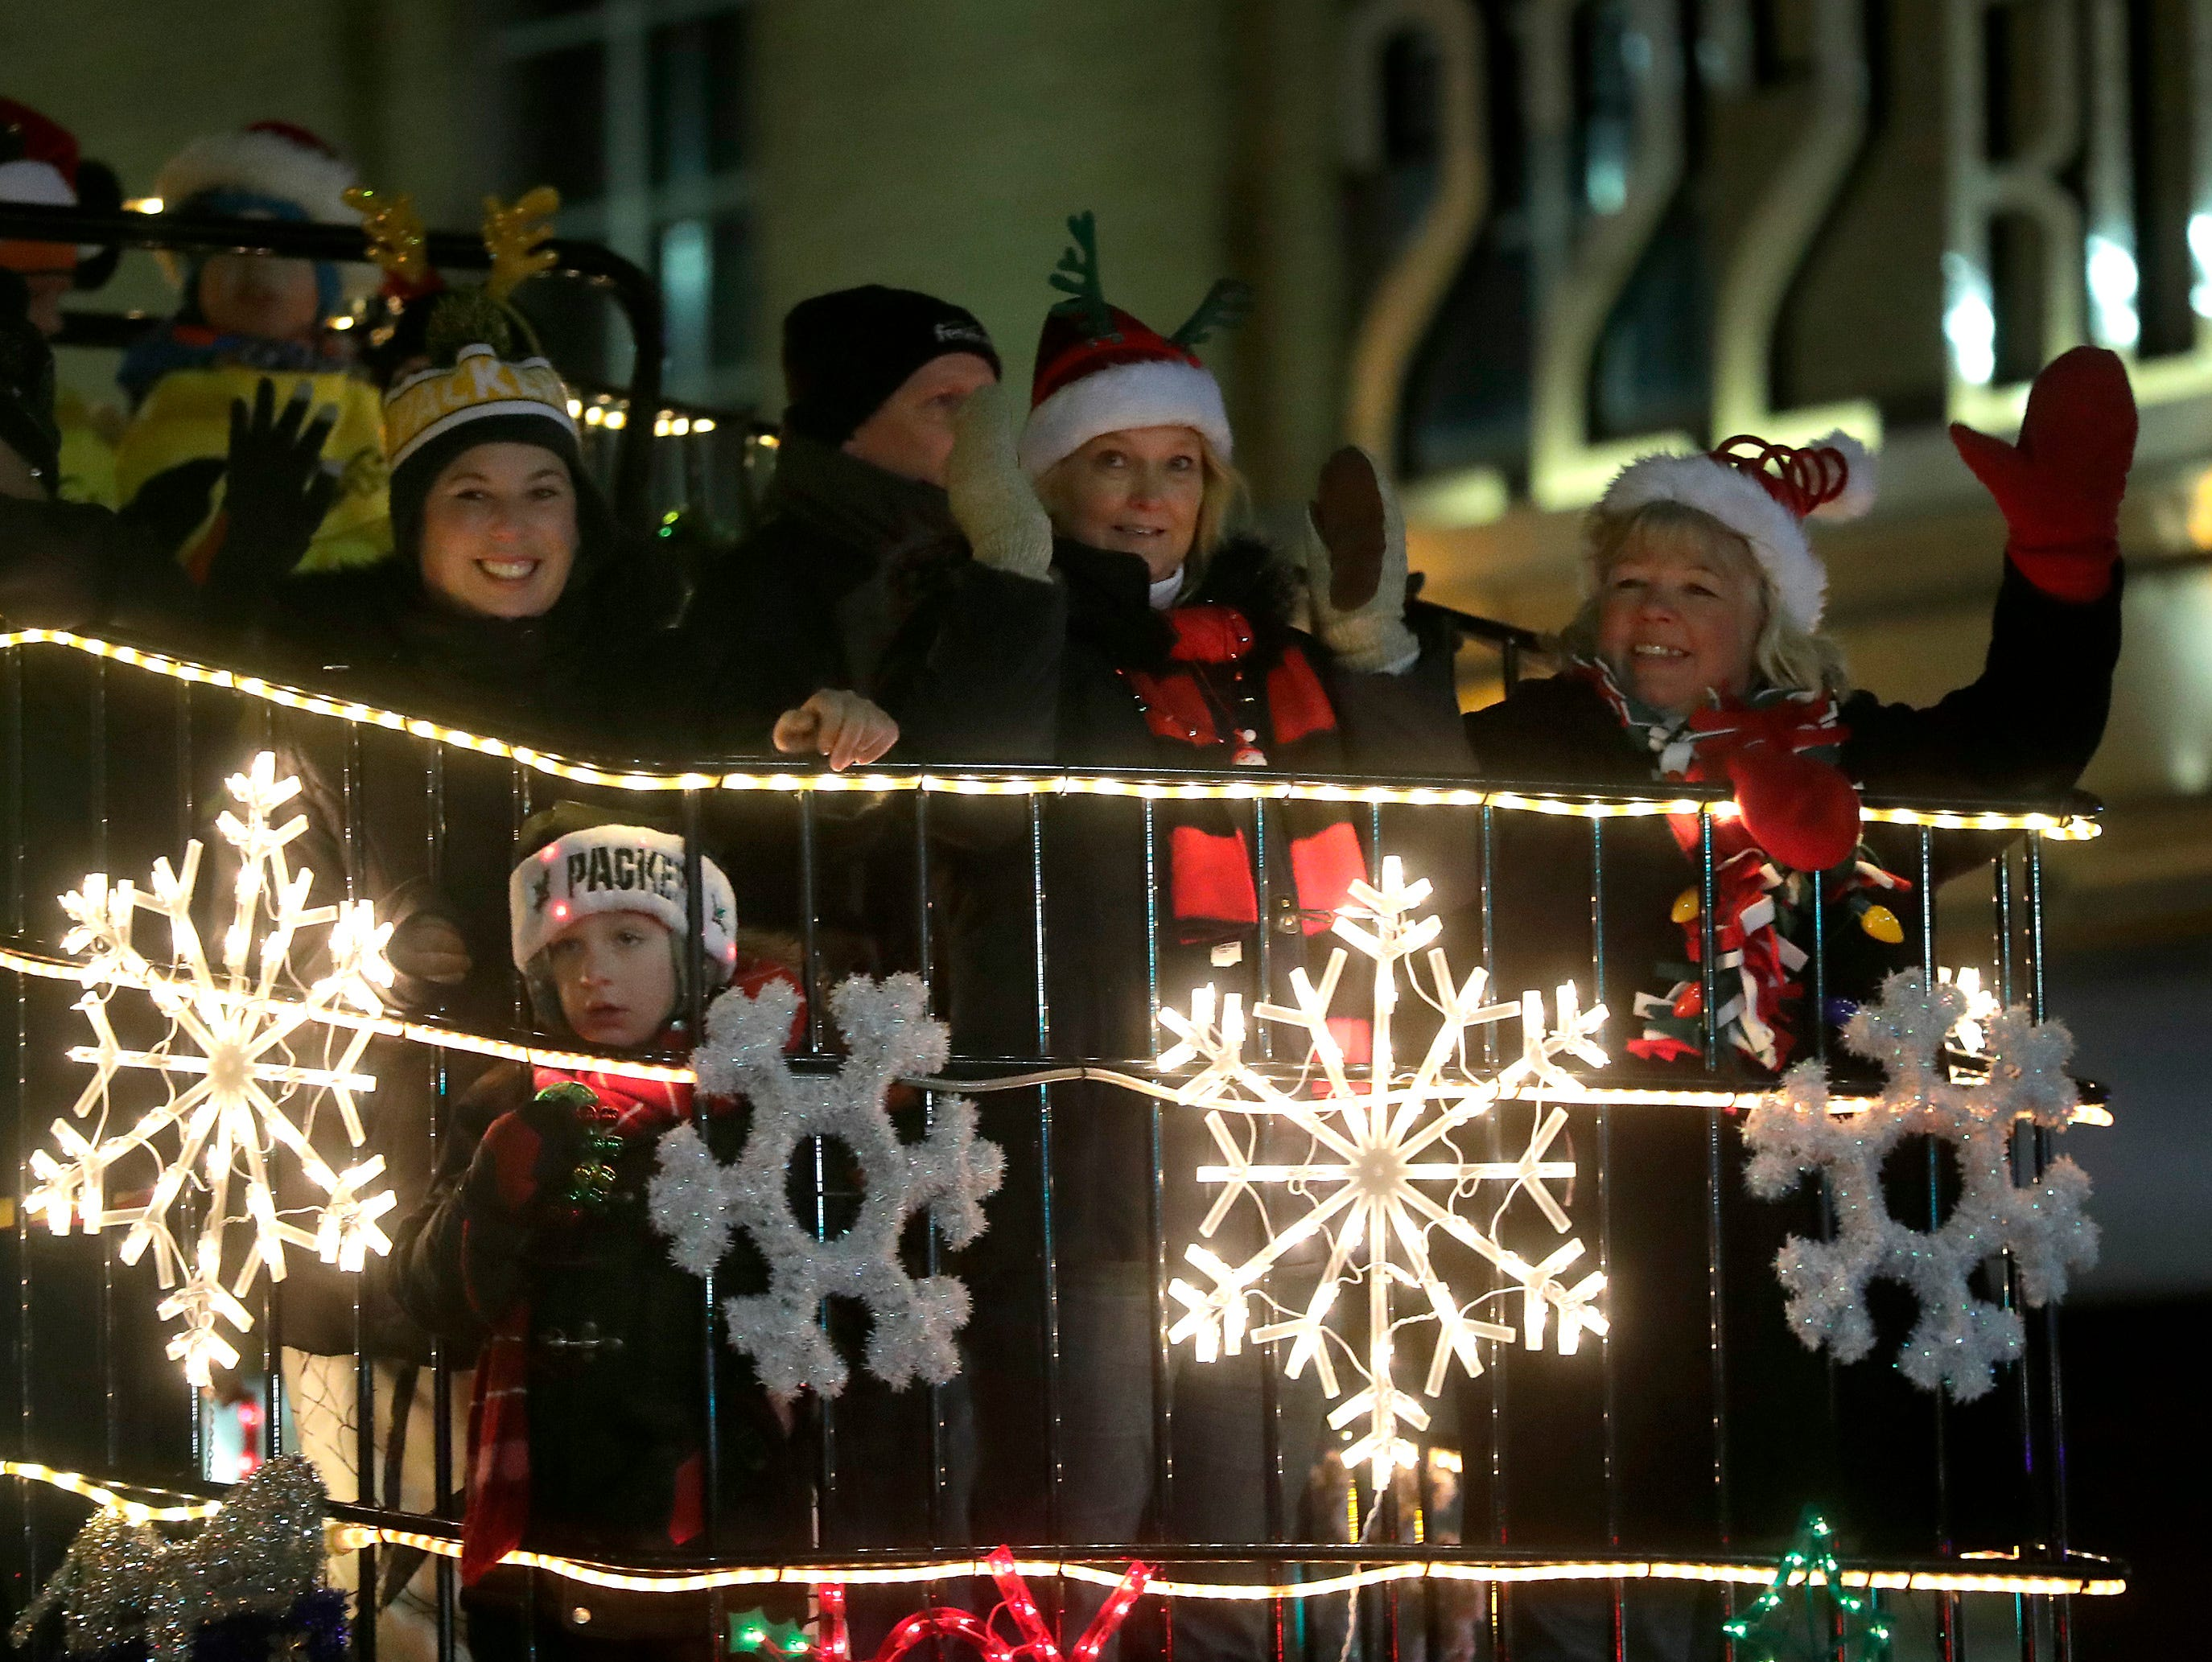 """The Festival fl;oat during the 48th Annual Downtown Appleton Christmas Parade on Tuesday, Nov. 20, 2018 in Appleton, Wis. This year's theme was """"Home for the Holidays."""" Wm. Glasheen/USA TODAY NETWORK-Wisconsin."""